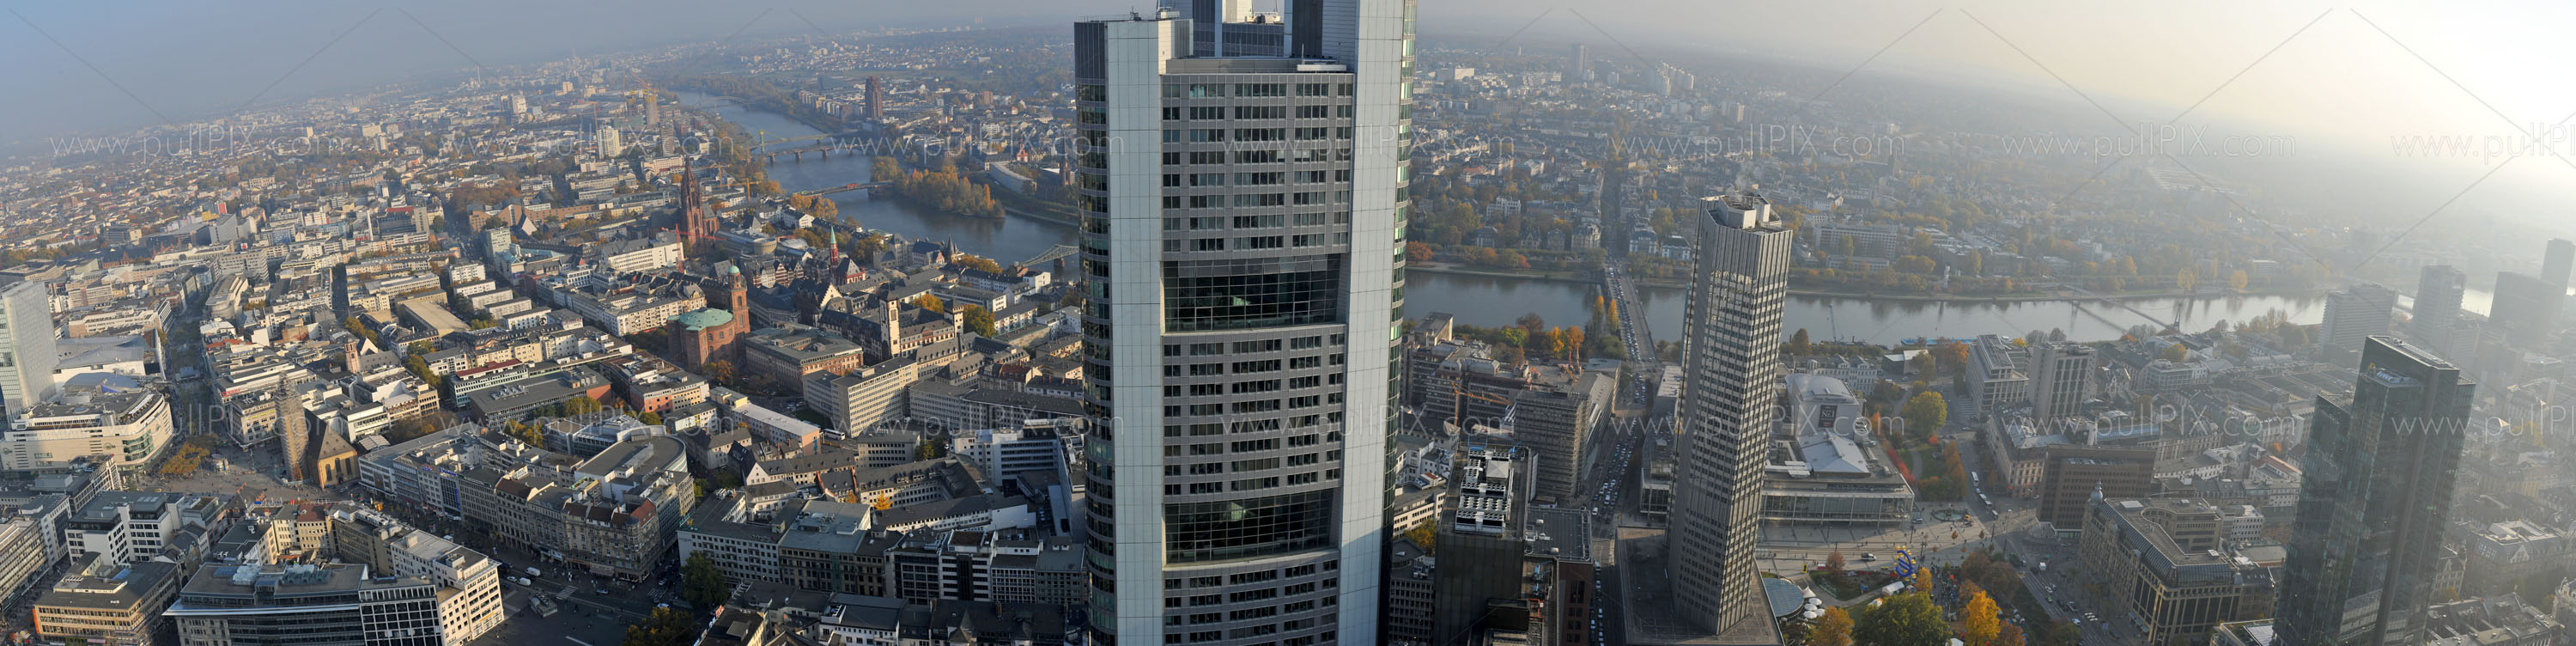 Preview FF_maintower_05.jpg